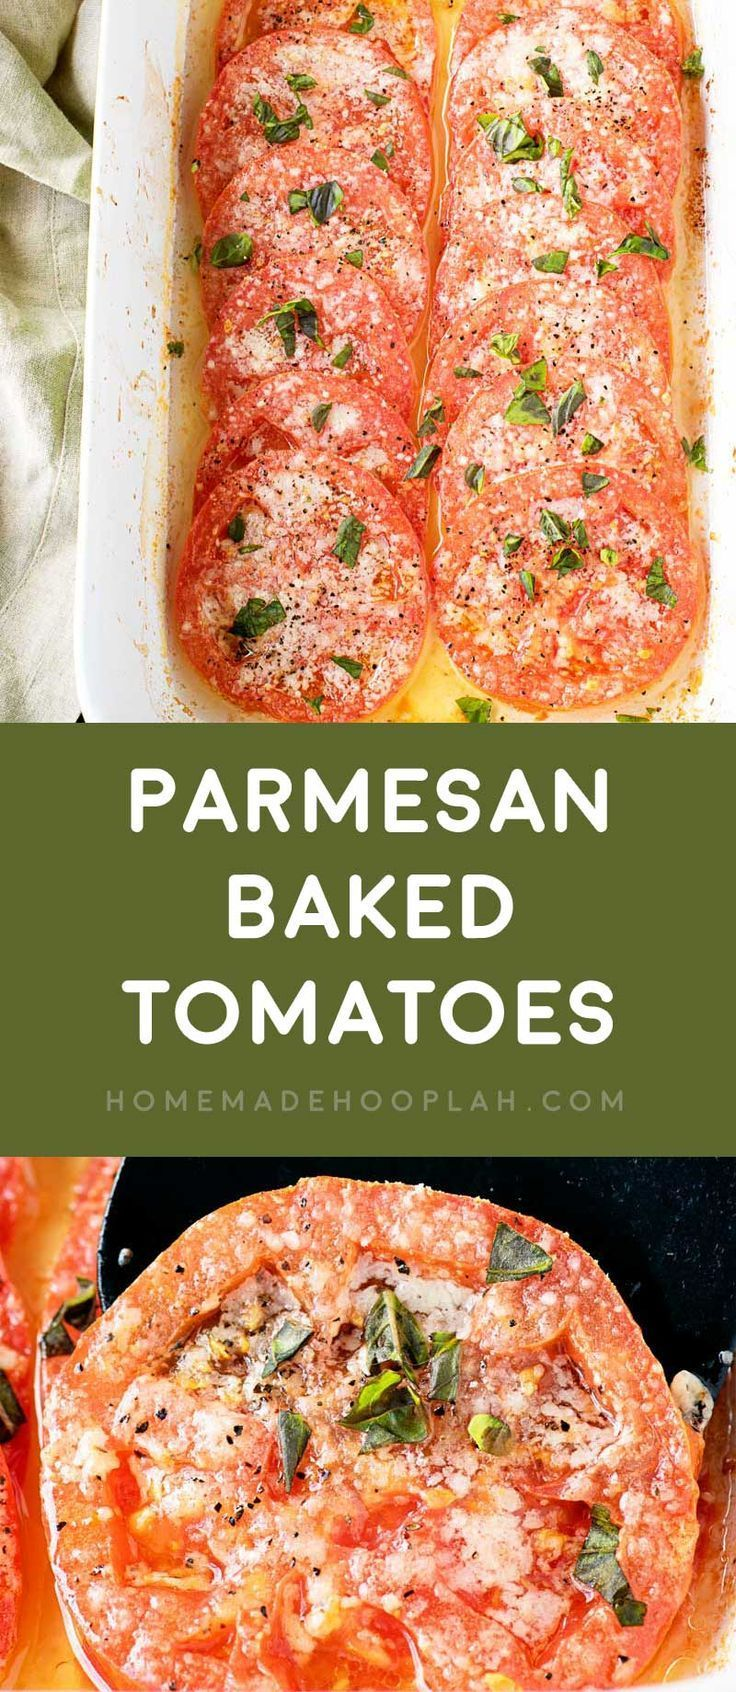 Parmesan Baked Tomatoes! If you're craving pizza but not the calories, this easy baked tomato dish is like a pizza without the dough. Bakes fast and only has 4 ingredients! | HomemadeHooplah.com